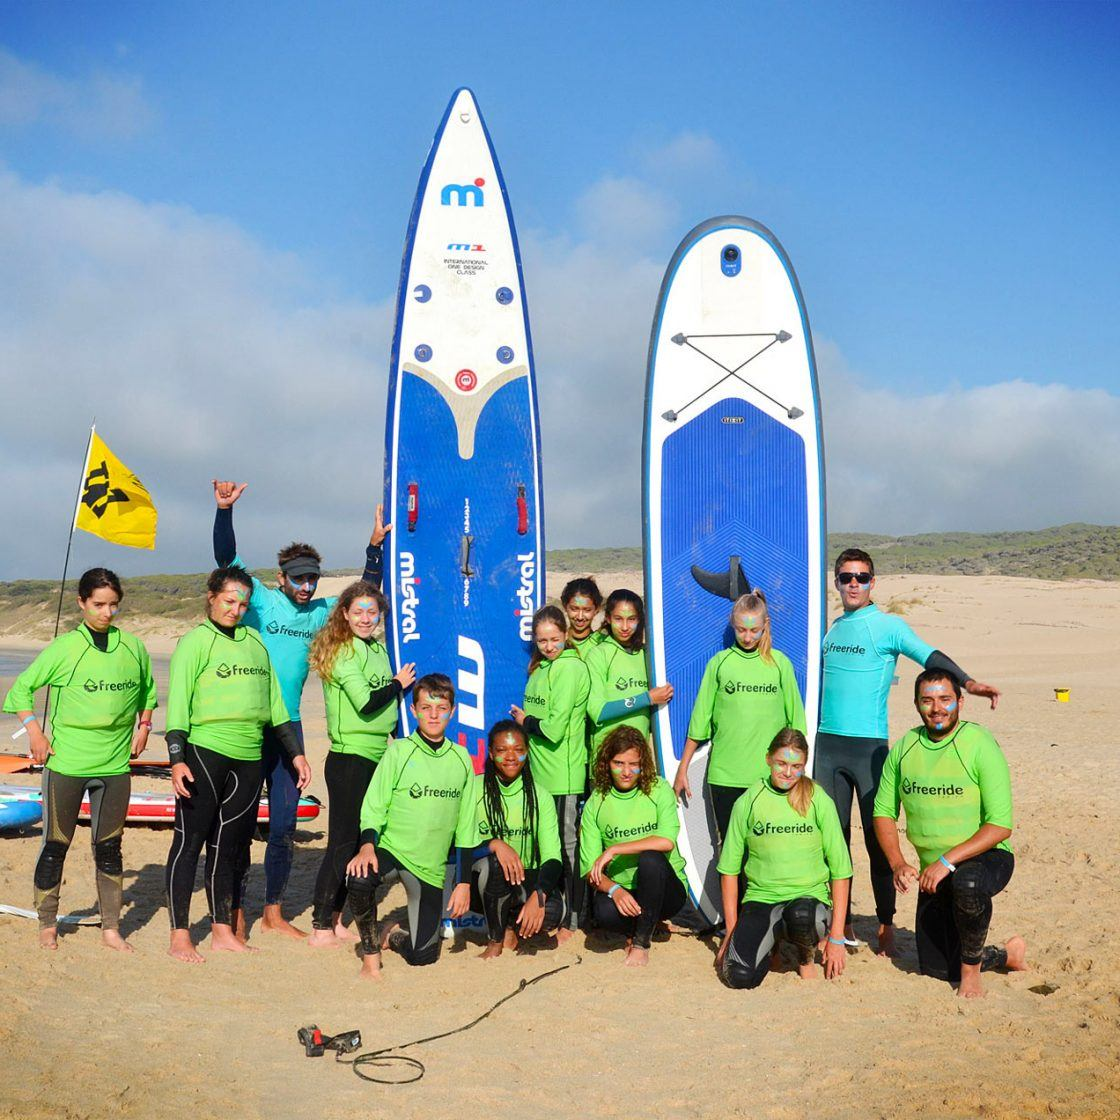 groupe stand up paddle, classe nautique